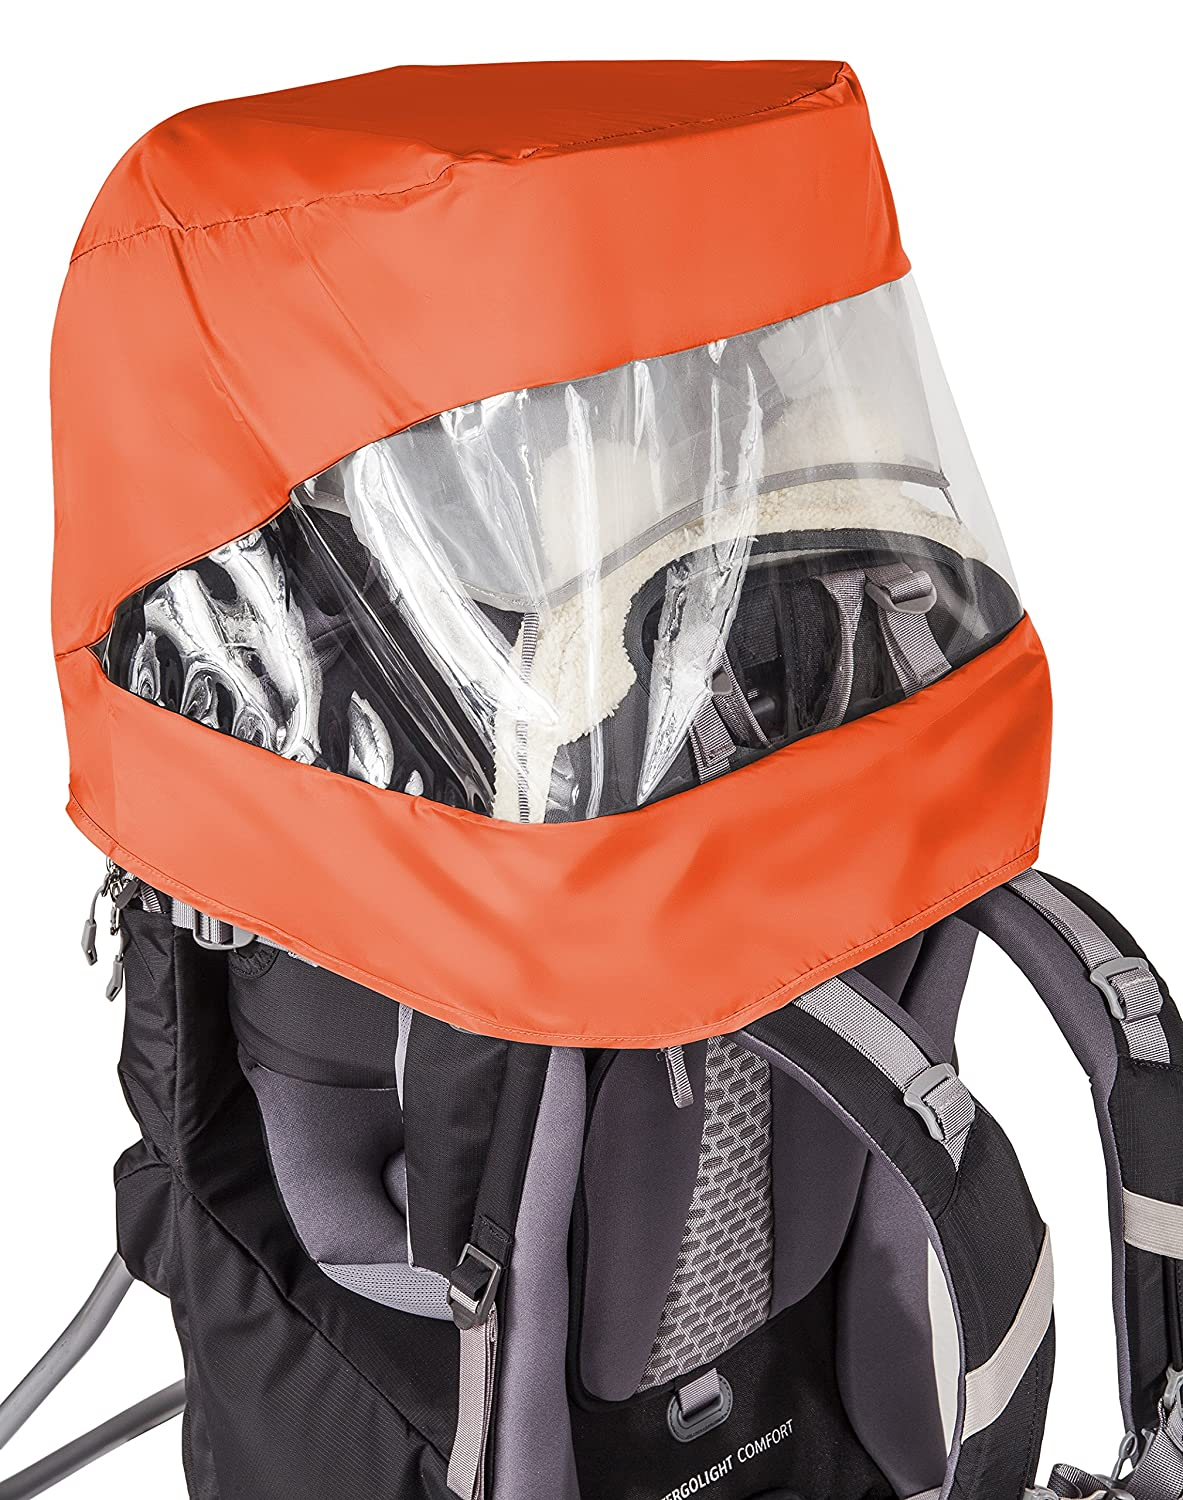 Vaude Sun Combination Raincover Shuttle One Size 119032270